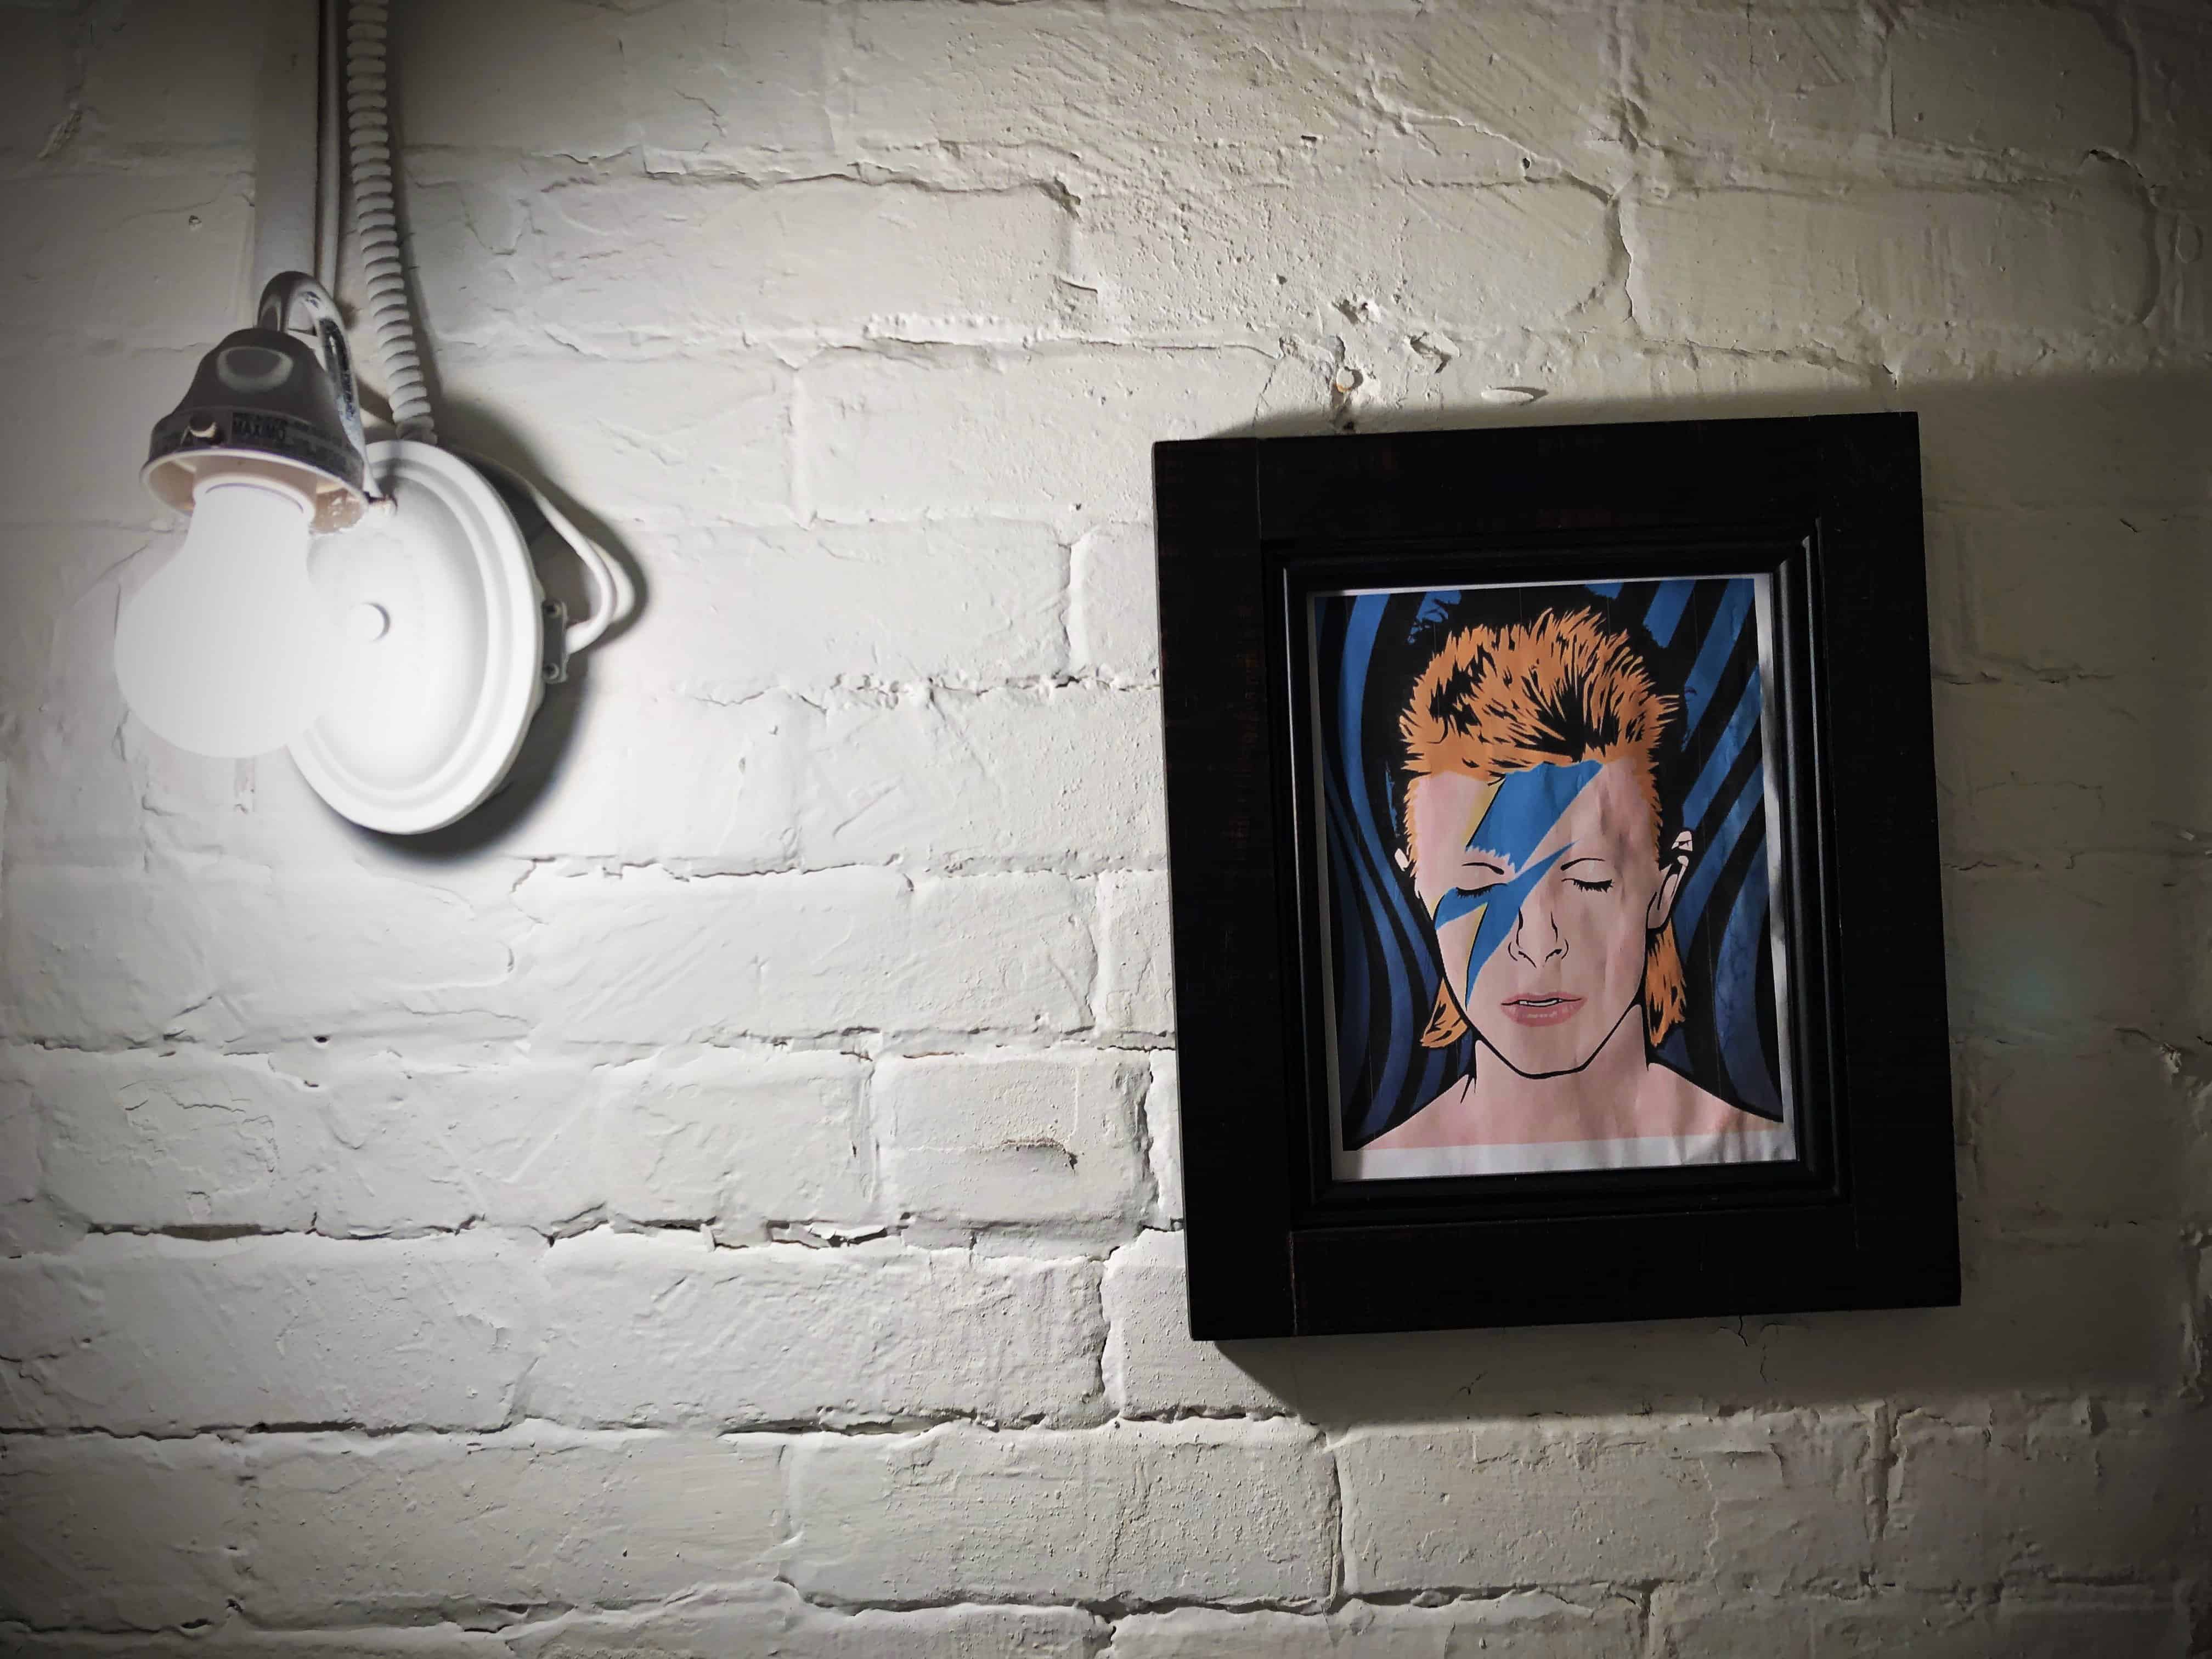 Bowie Image in Bathroom